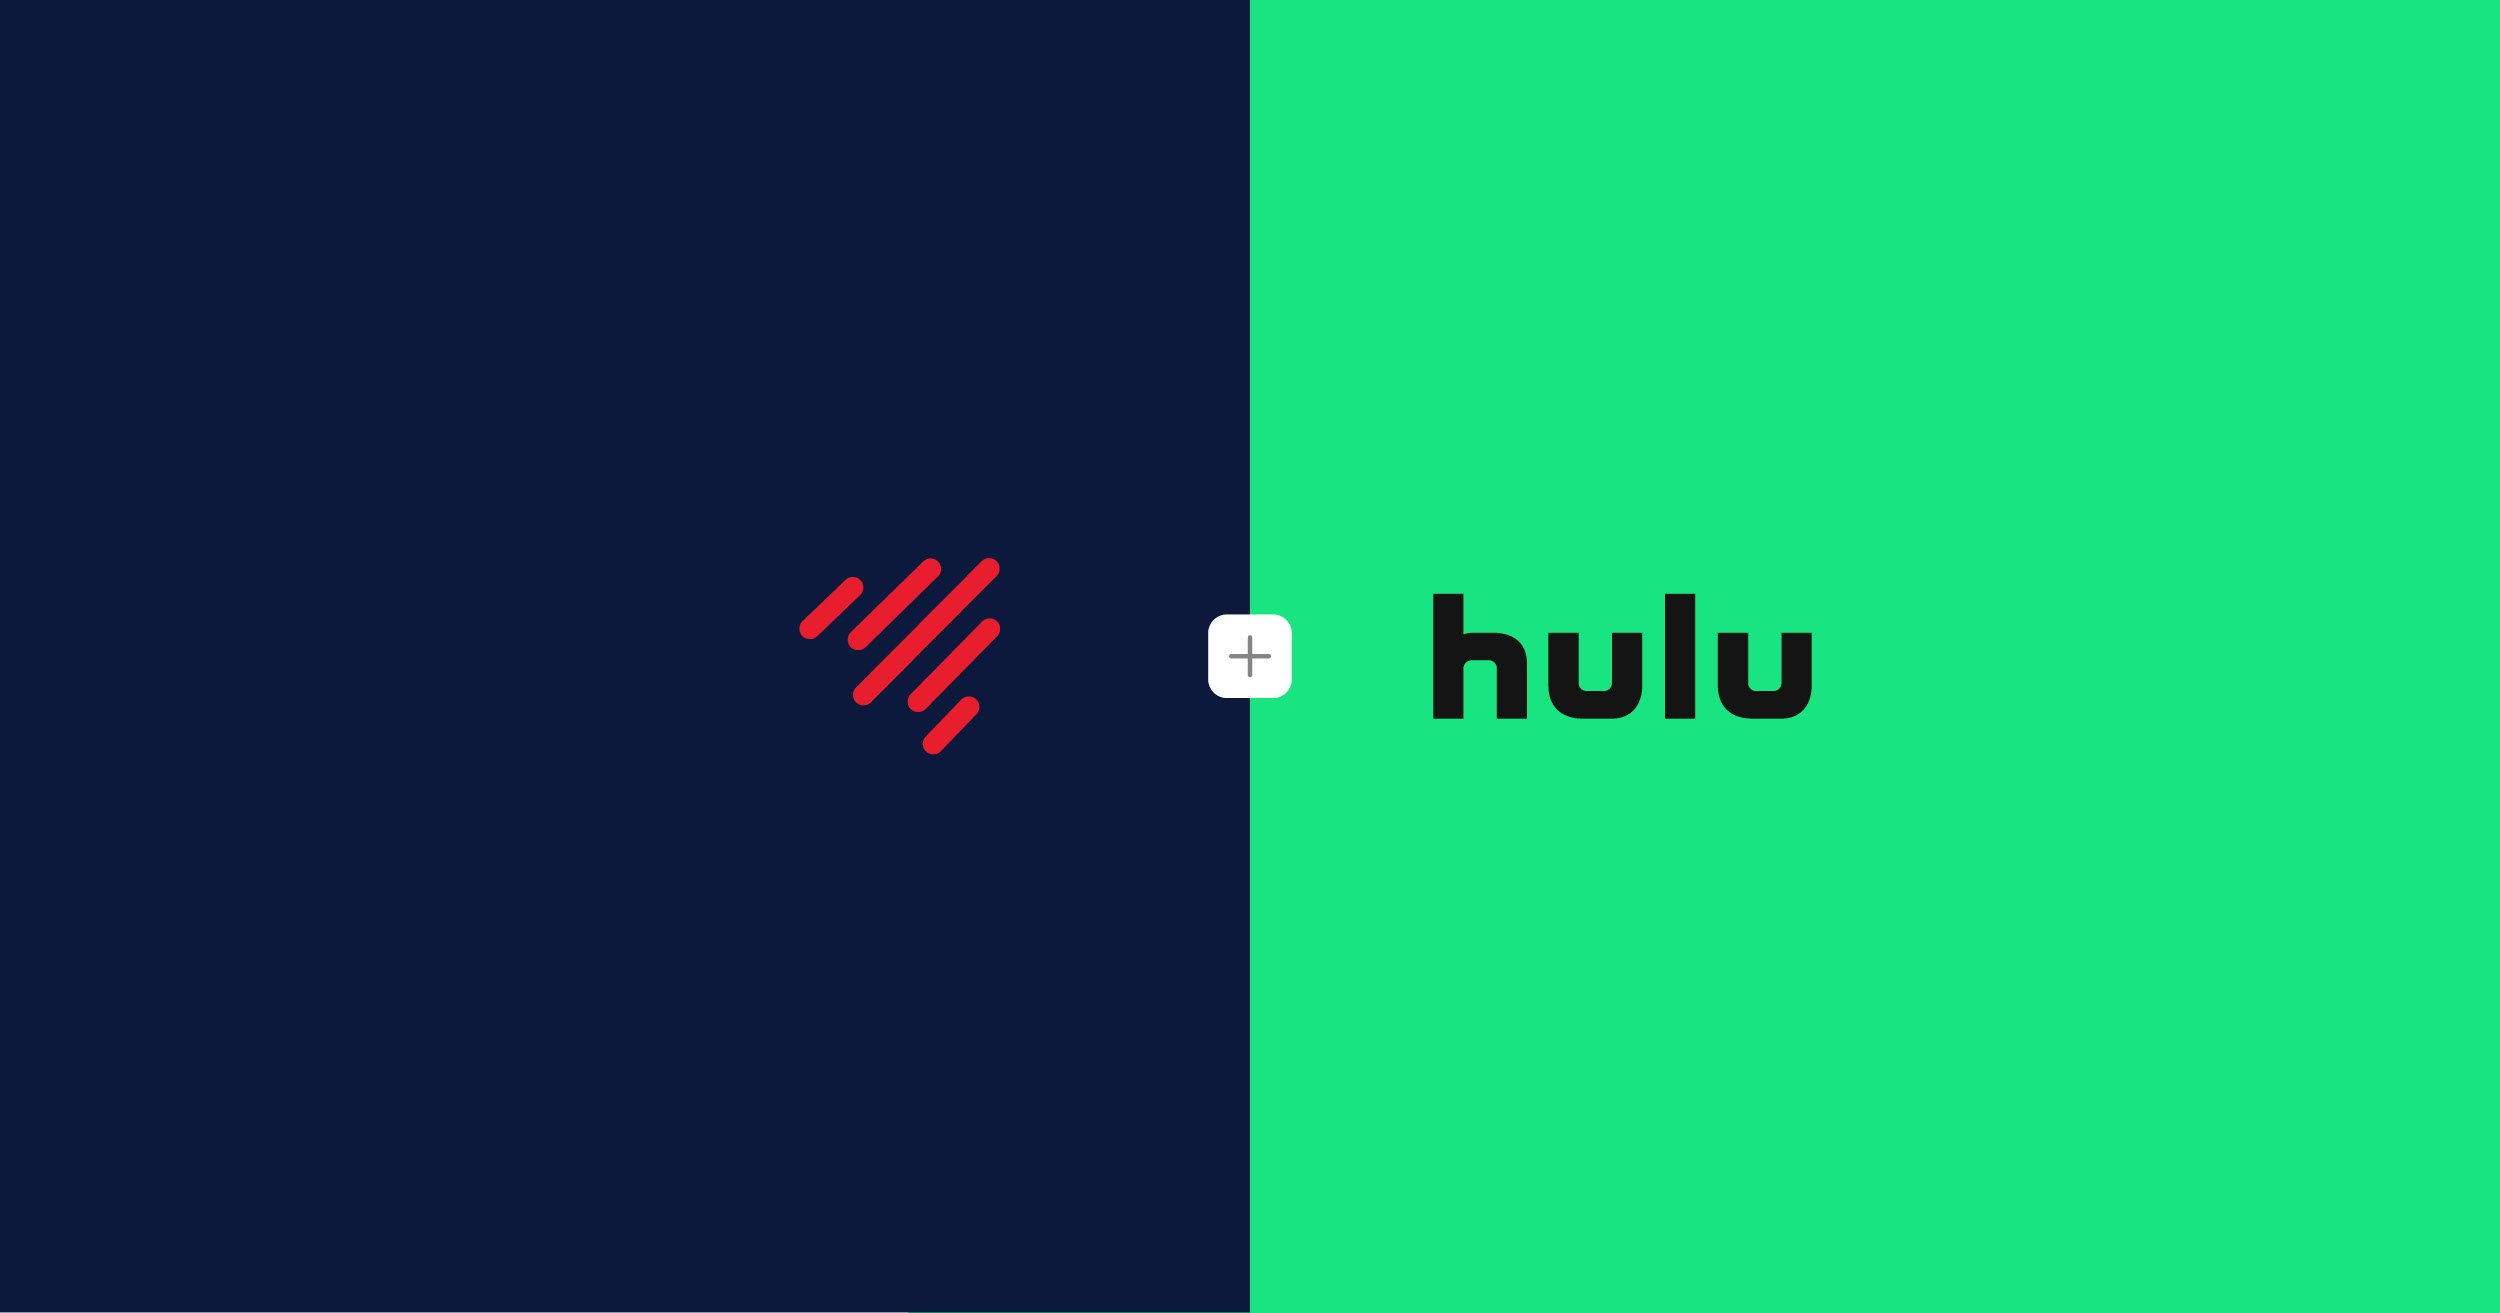 Hulu + Shuttlerock: Opening The Door To Streaming TV For SMB Advertisers